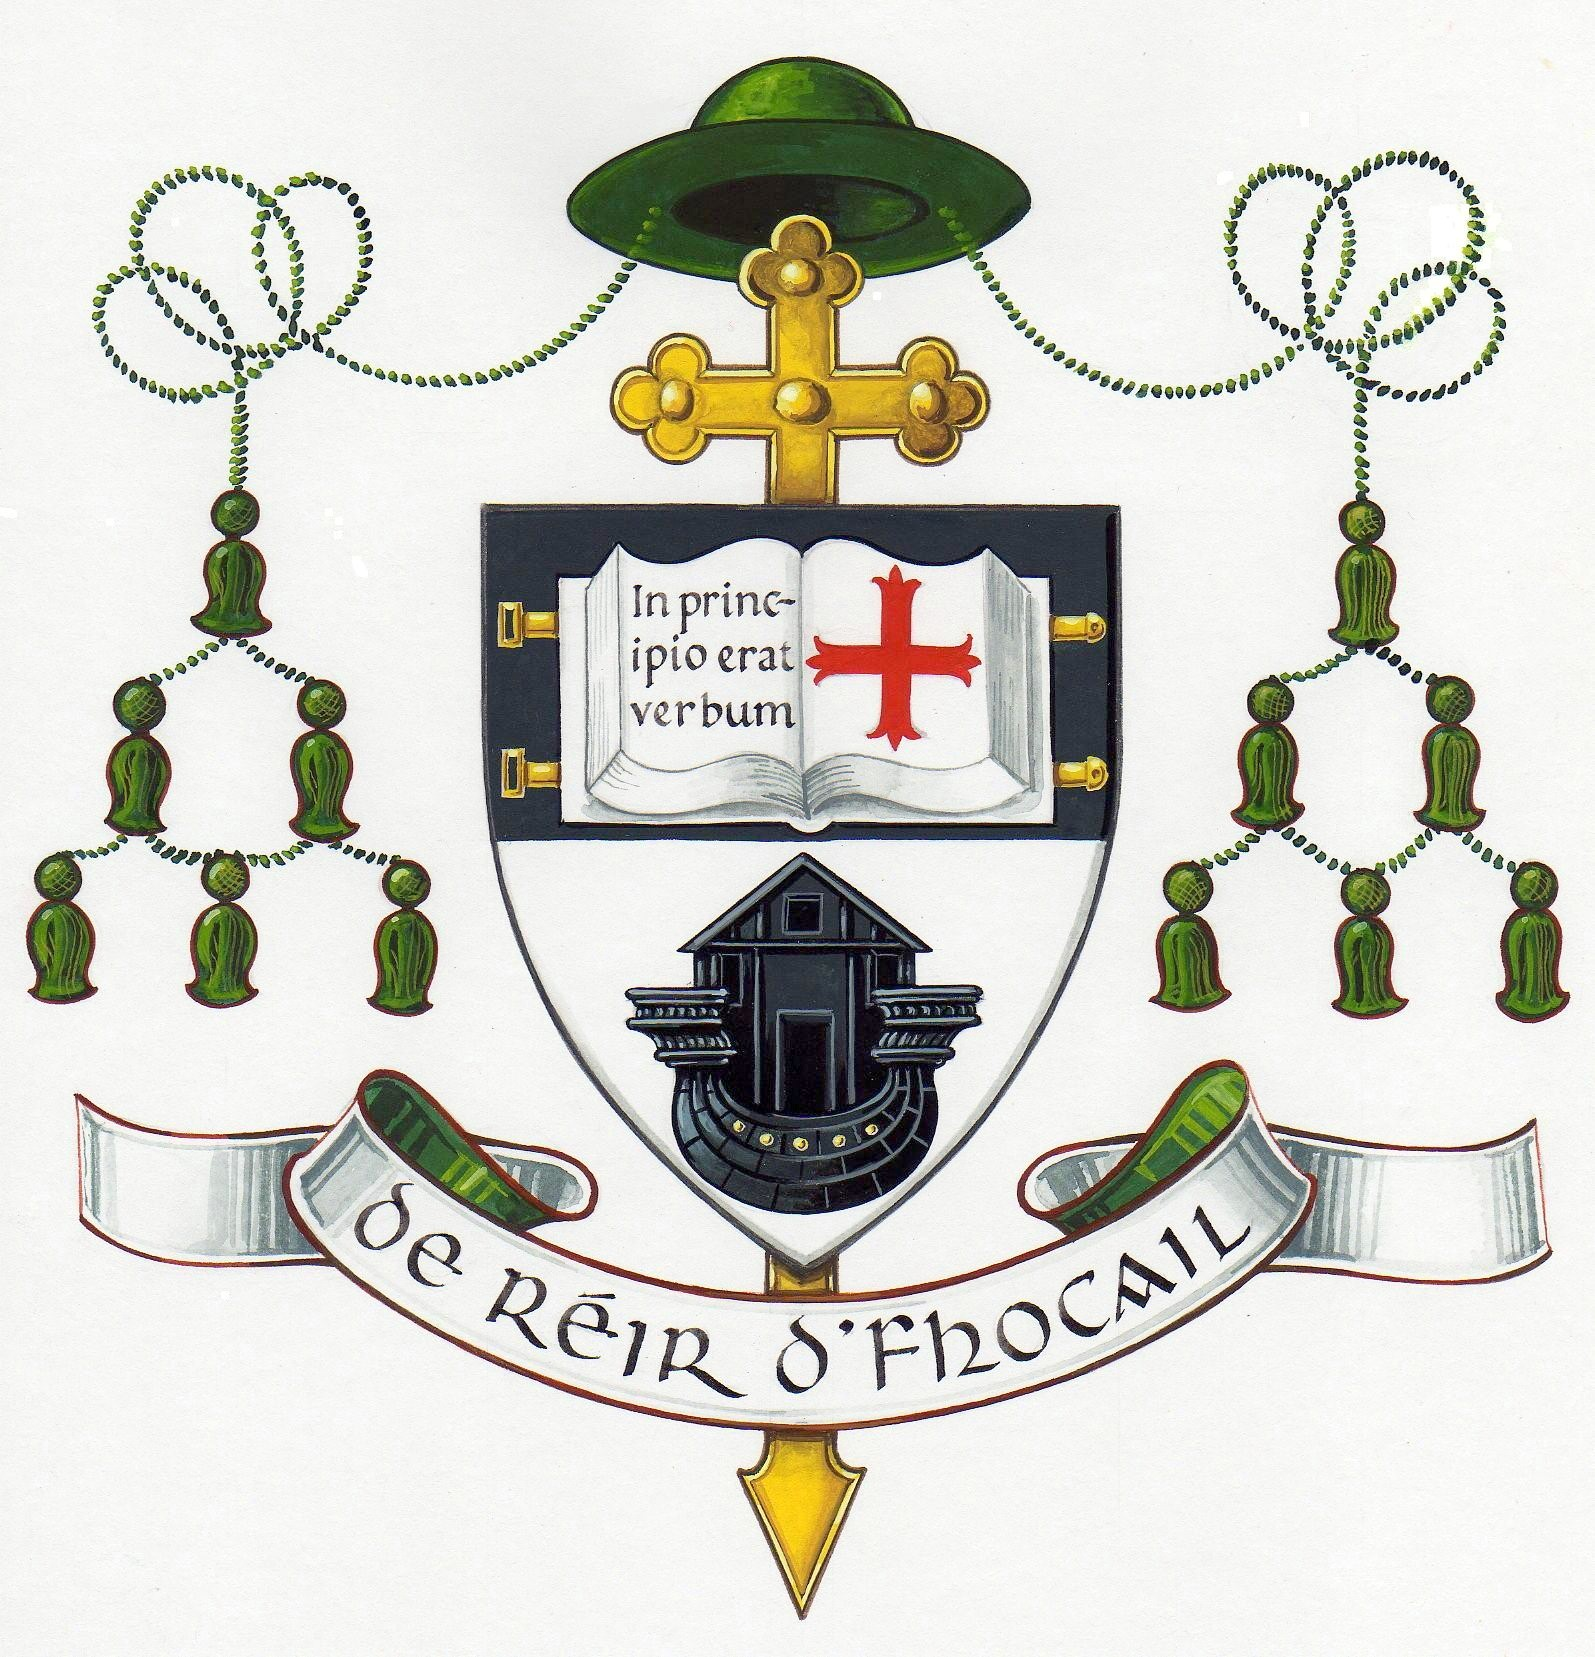 http://achonrydiocese.org/wp-content/uploads/2013/03/Bishops-Coat-of-Arms1.jpg